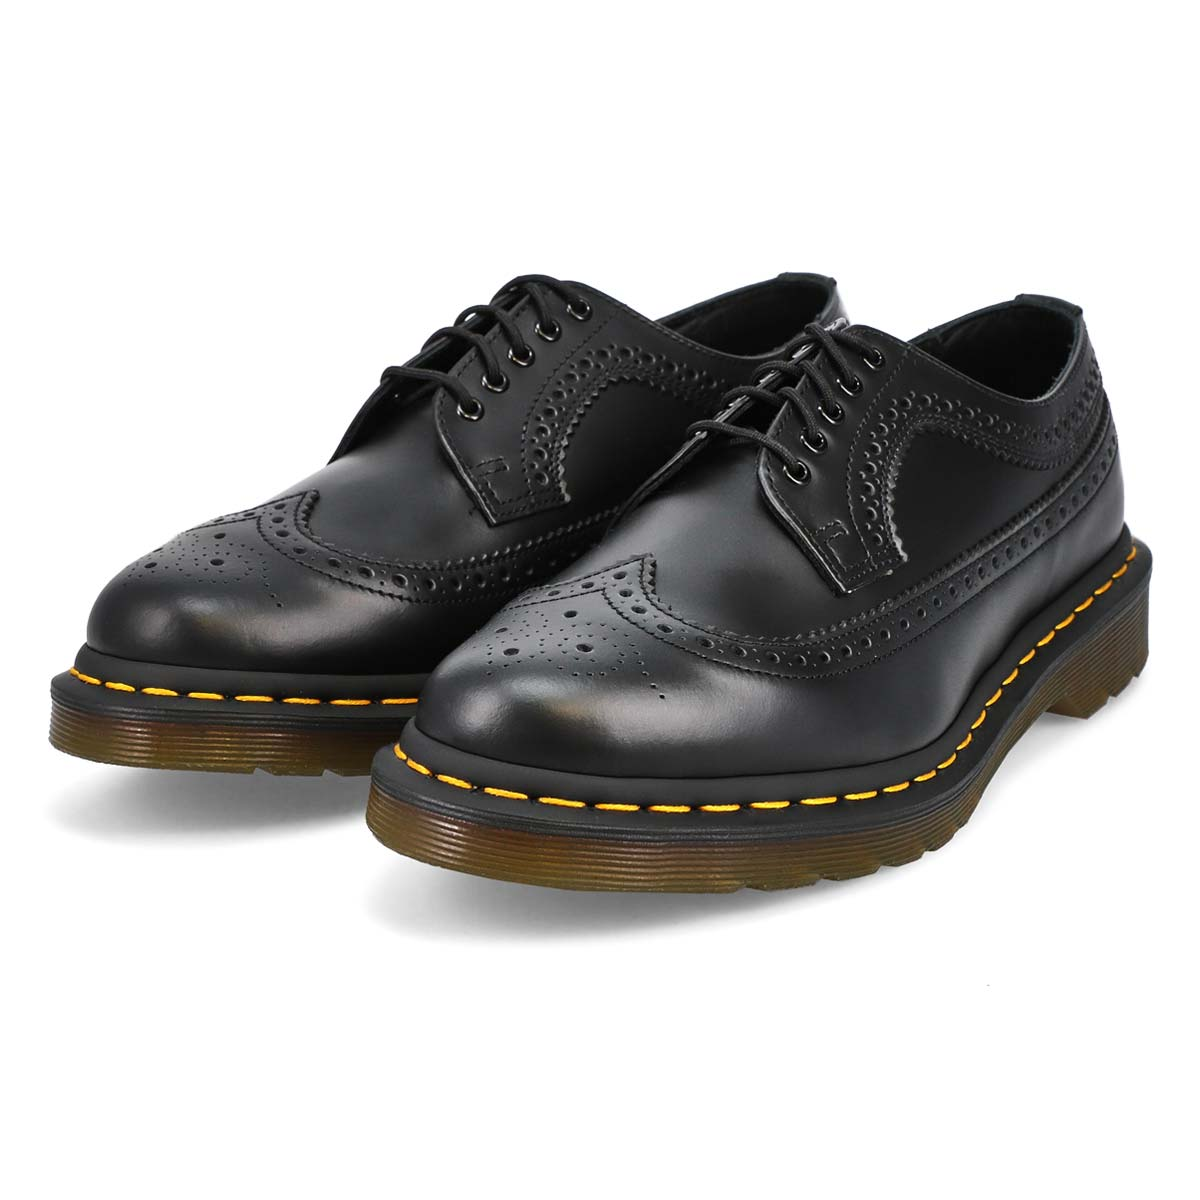 Men's 3989 Yellow Stitch Casual Oxford - Black